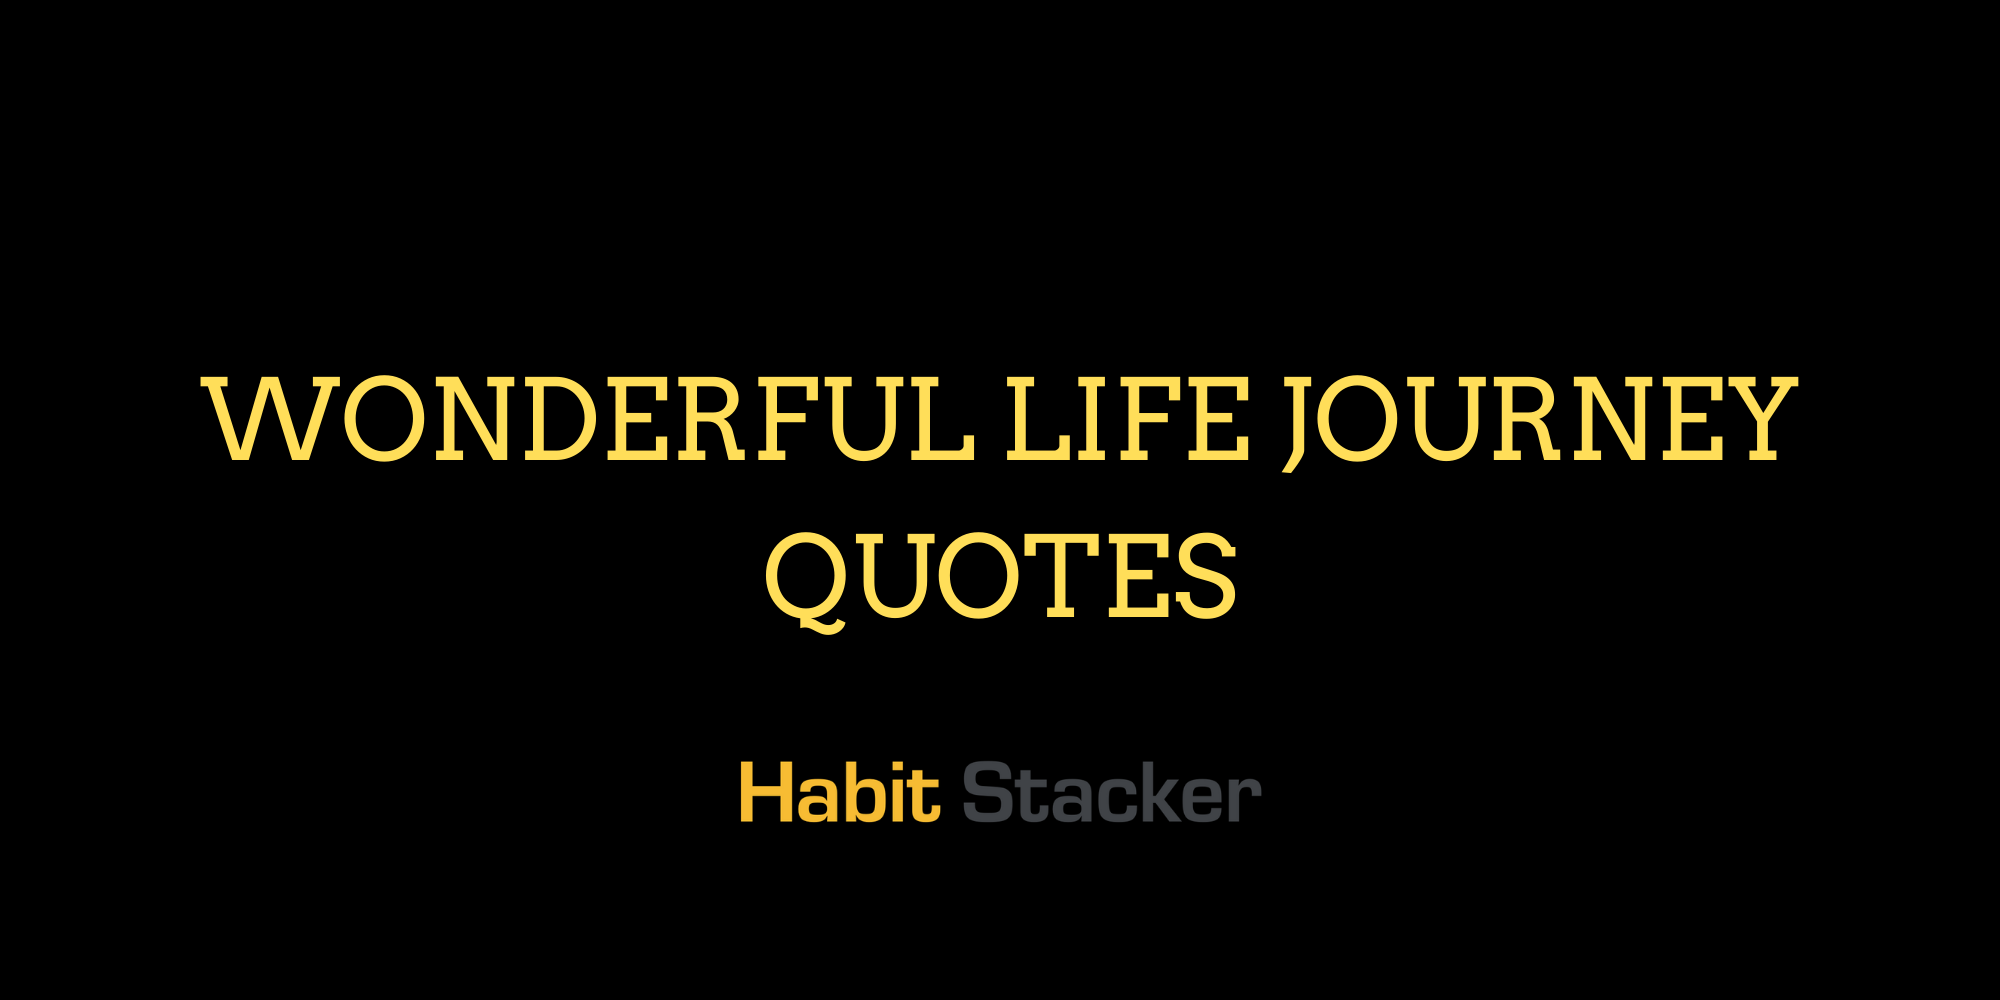 Wonderful Life Journey Quotes